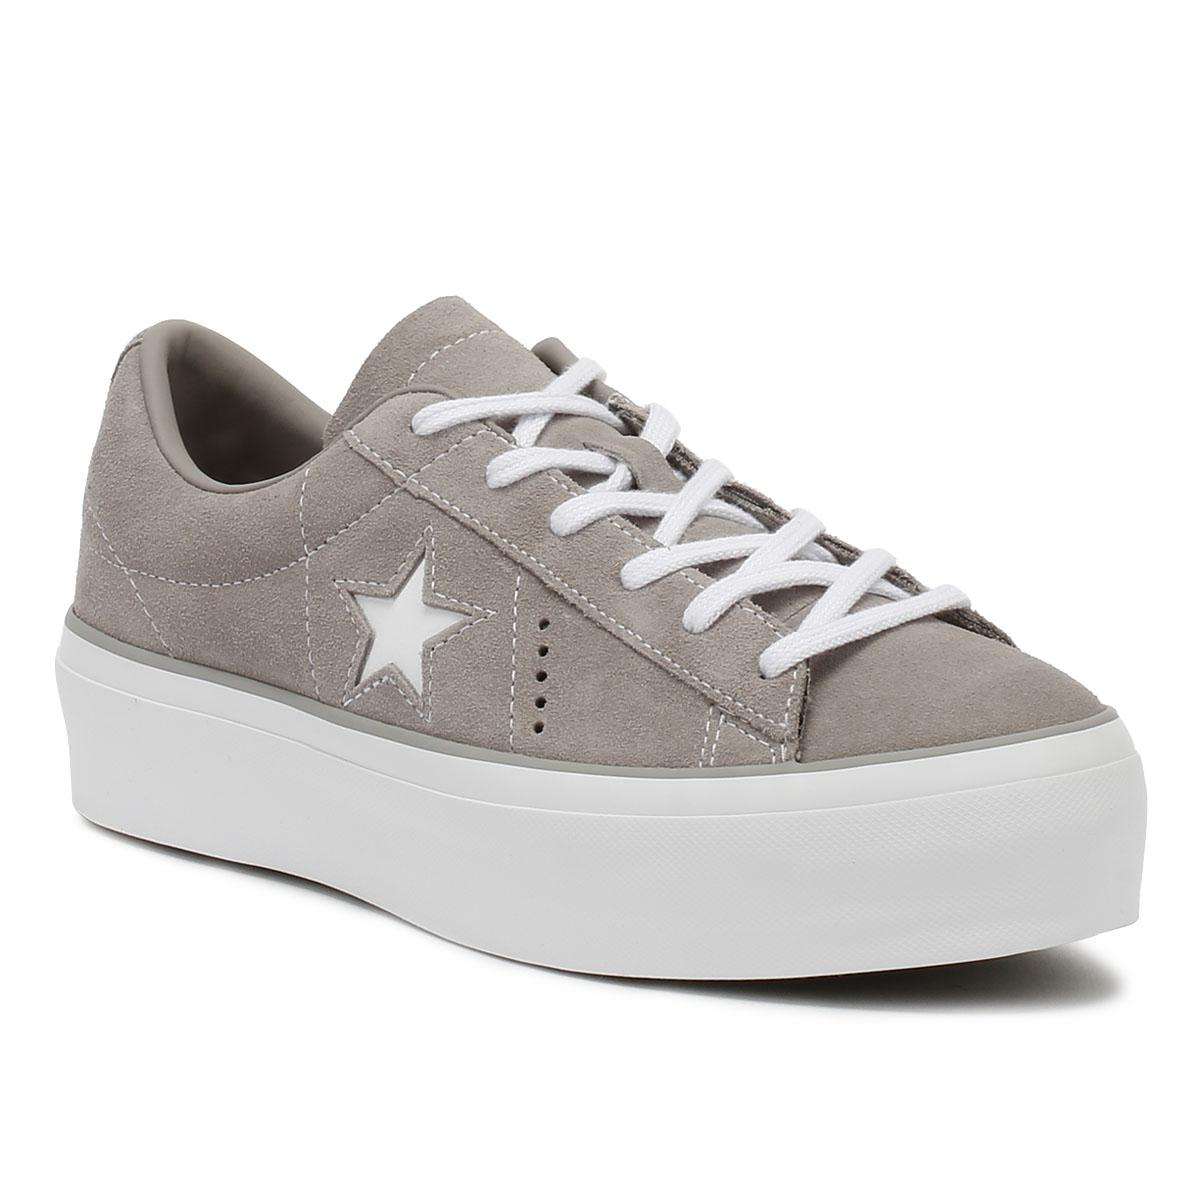 34447f2557ce Lyst - Converse One Star Womens Grey Platform Trainers in Gray